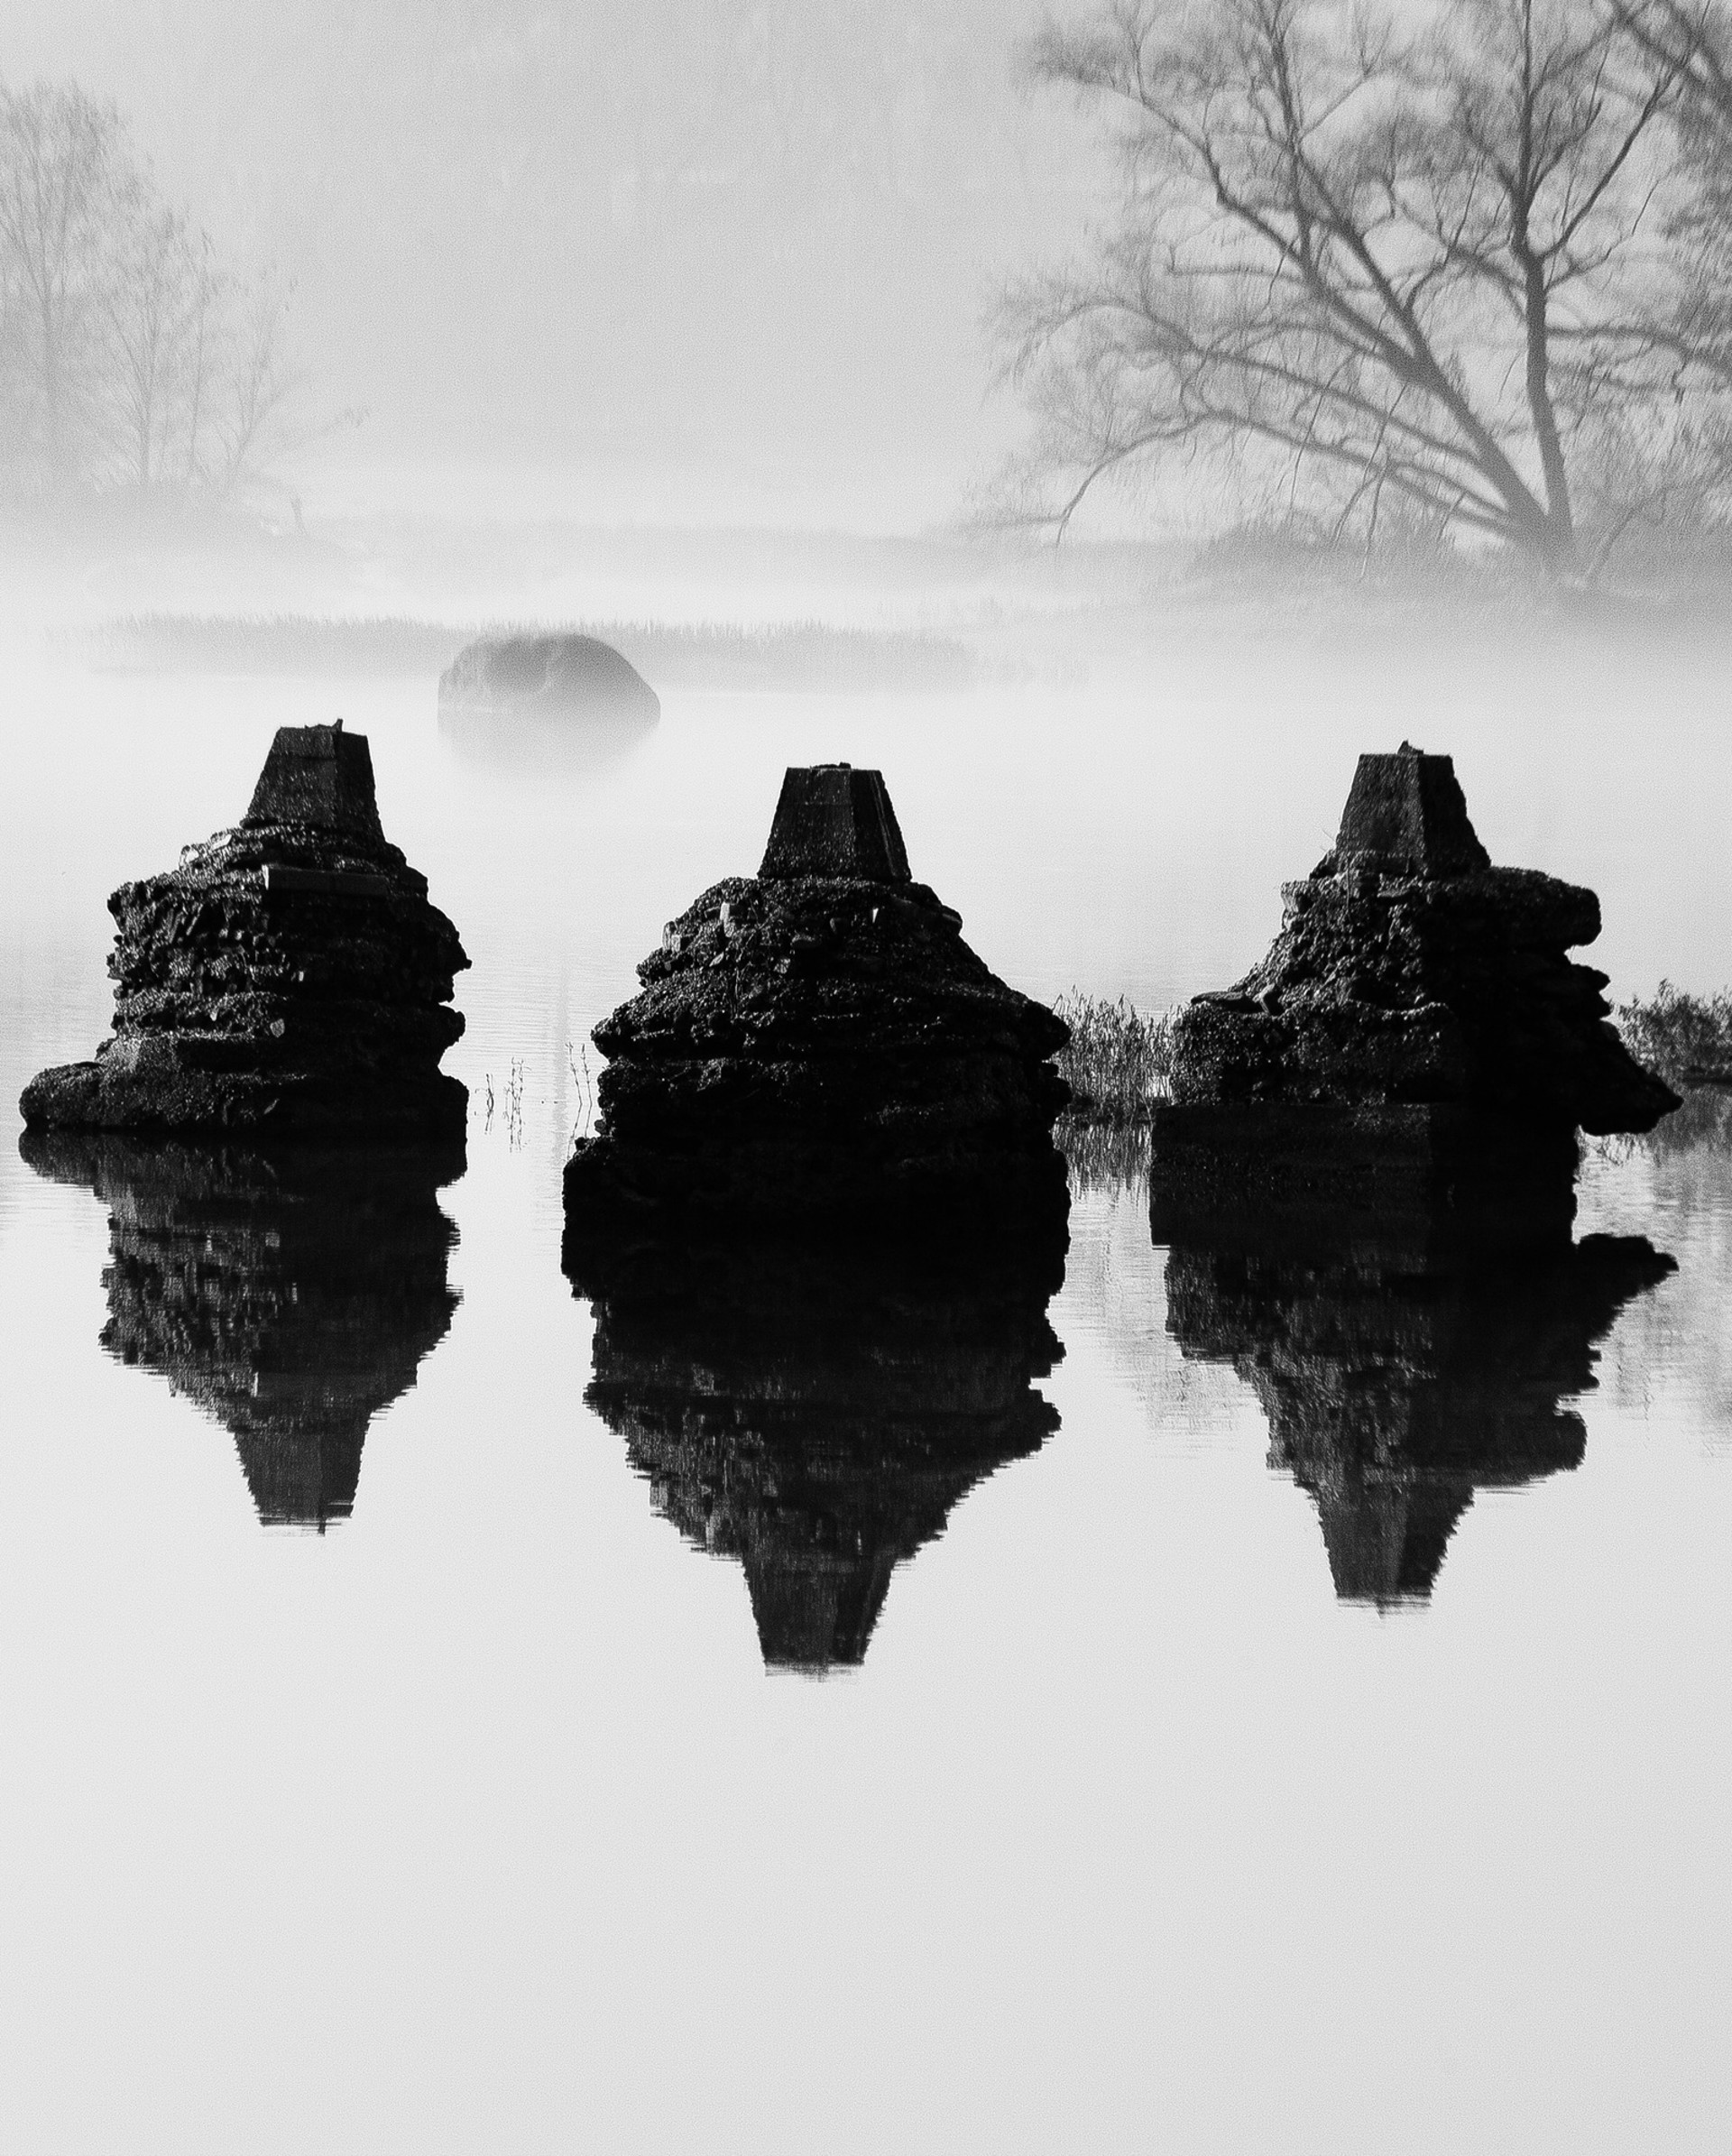 James River Fog V by Alex Nyerges